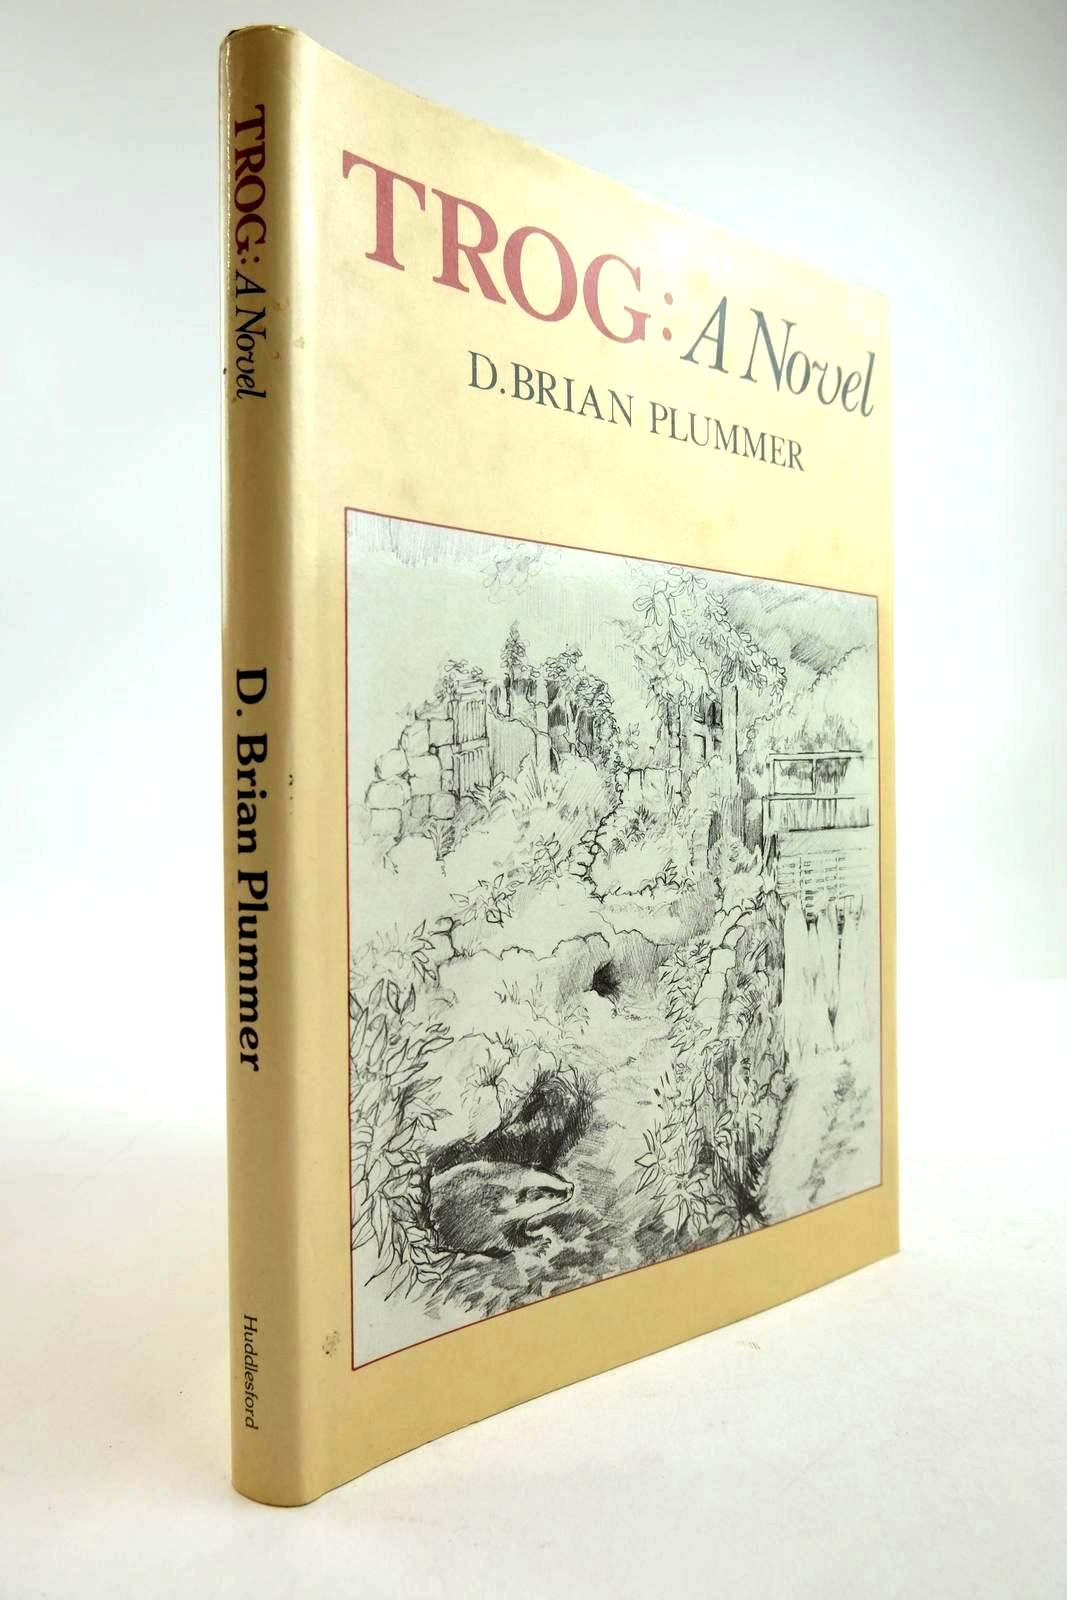 Photo of TROG A NOVEL written by Plummer, David Brian illustrated by Brough, Romey published by Huddlesford Publications (STOCK CODE: 2134299)  for sale by Stella & Rose's Books